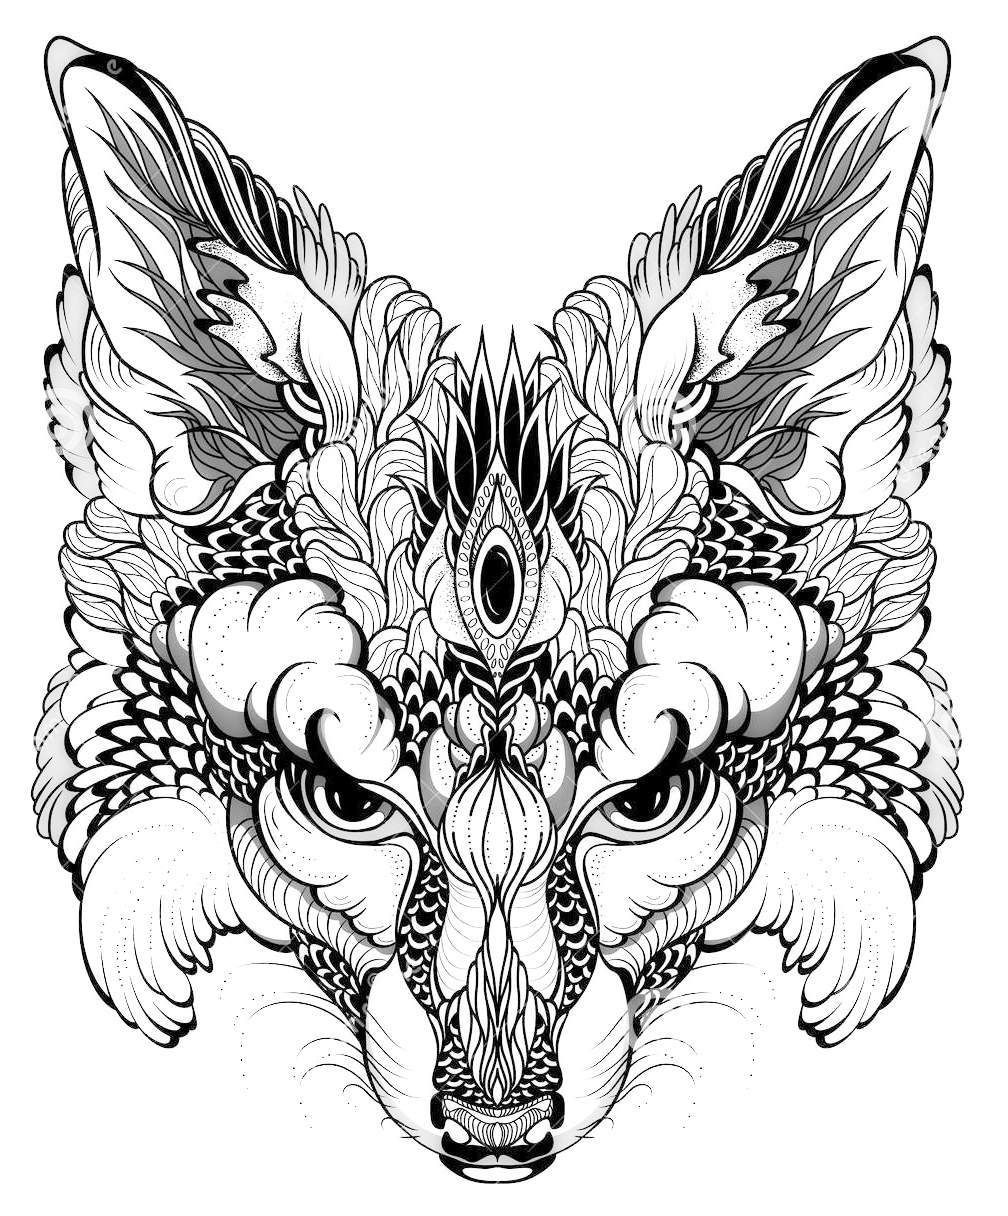 easy animal mandala coloring pages owl simple patterns 2 owls coloring pages for adults easy pages coloring mandala animal